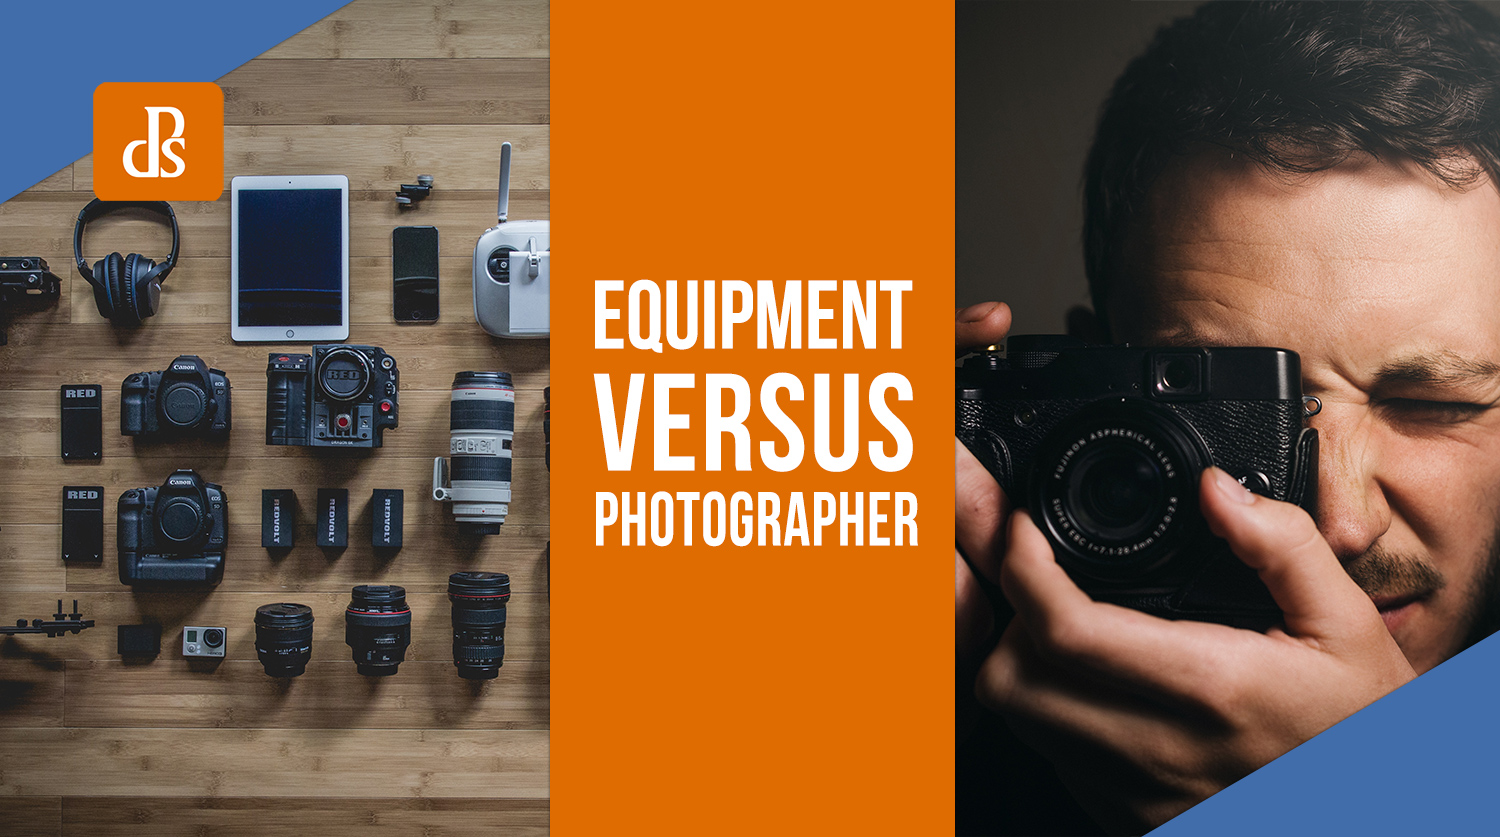 Equipment-versus-photographer-feature